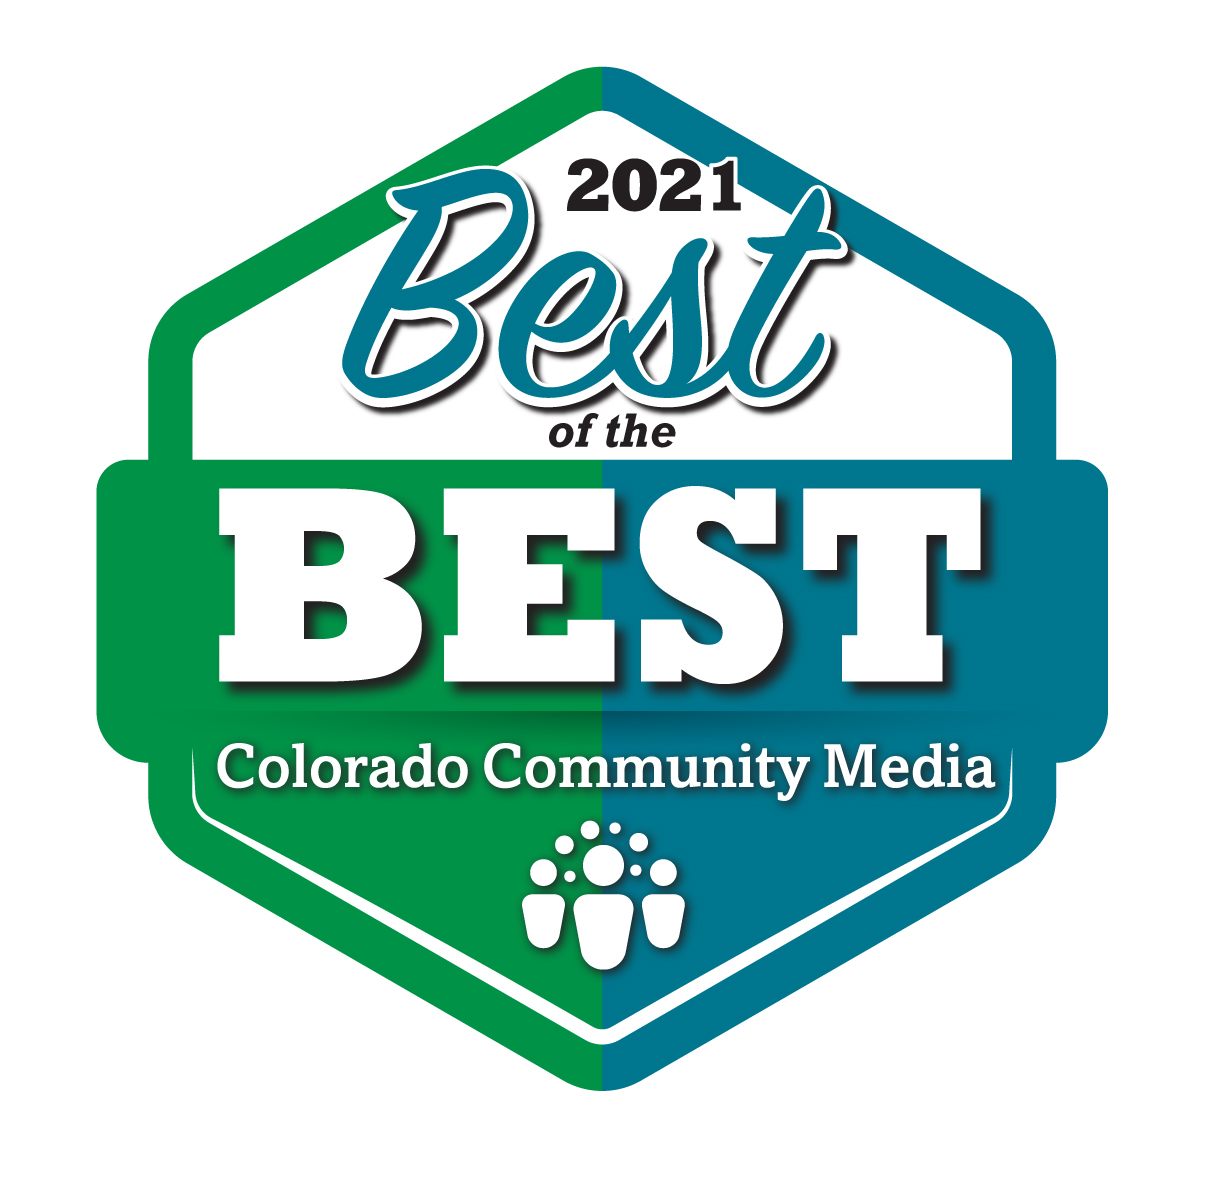 Best of the Best by Colorado Community